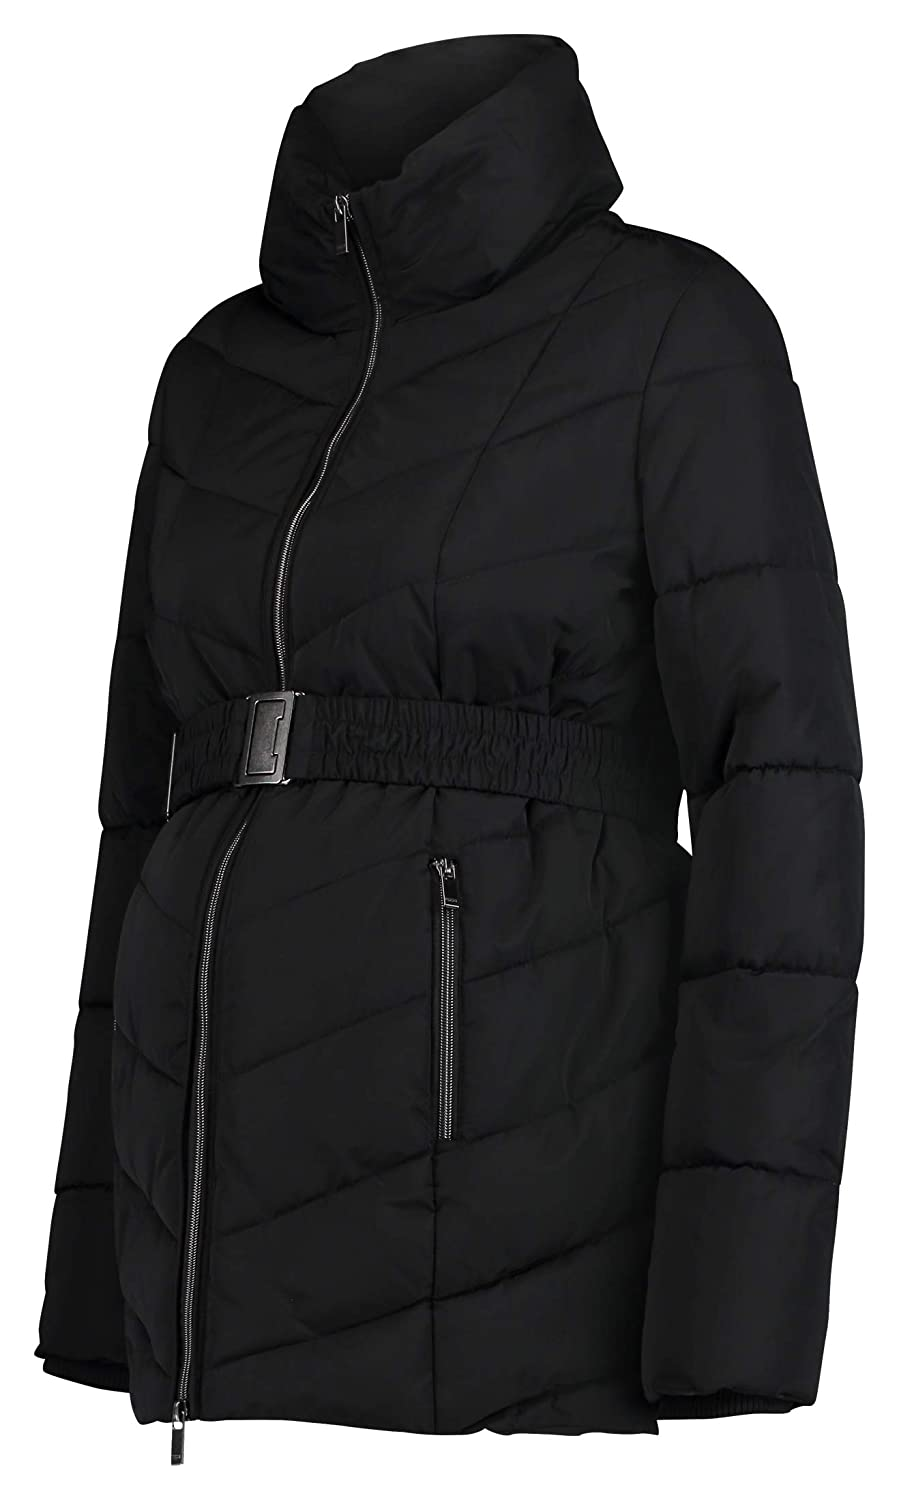 Noppies Damen Umstandsjacke Jacket Lois